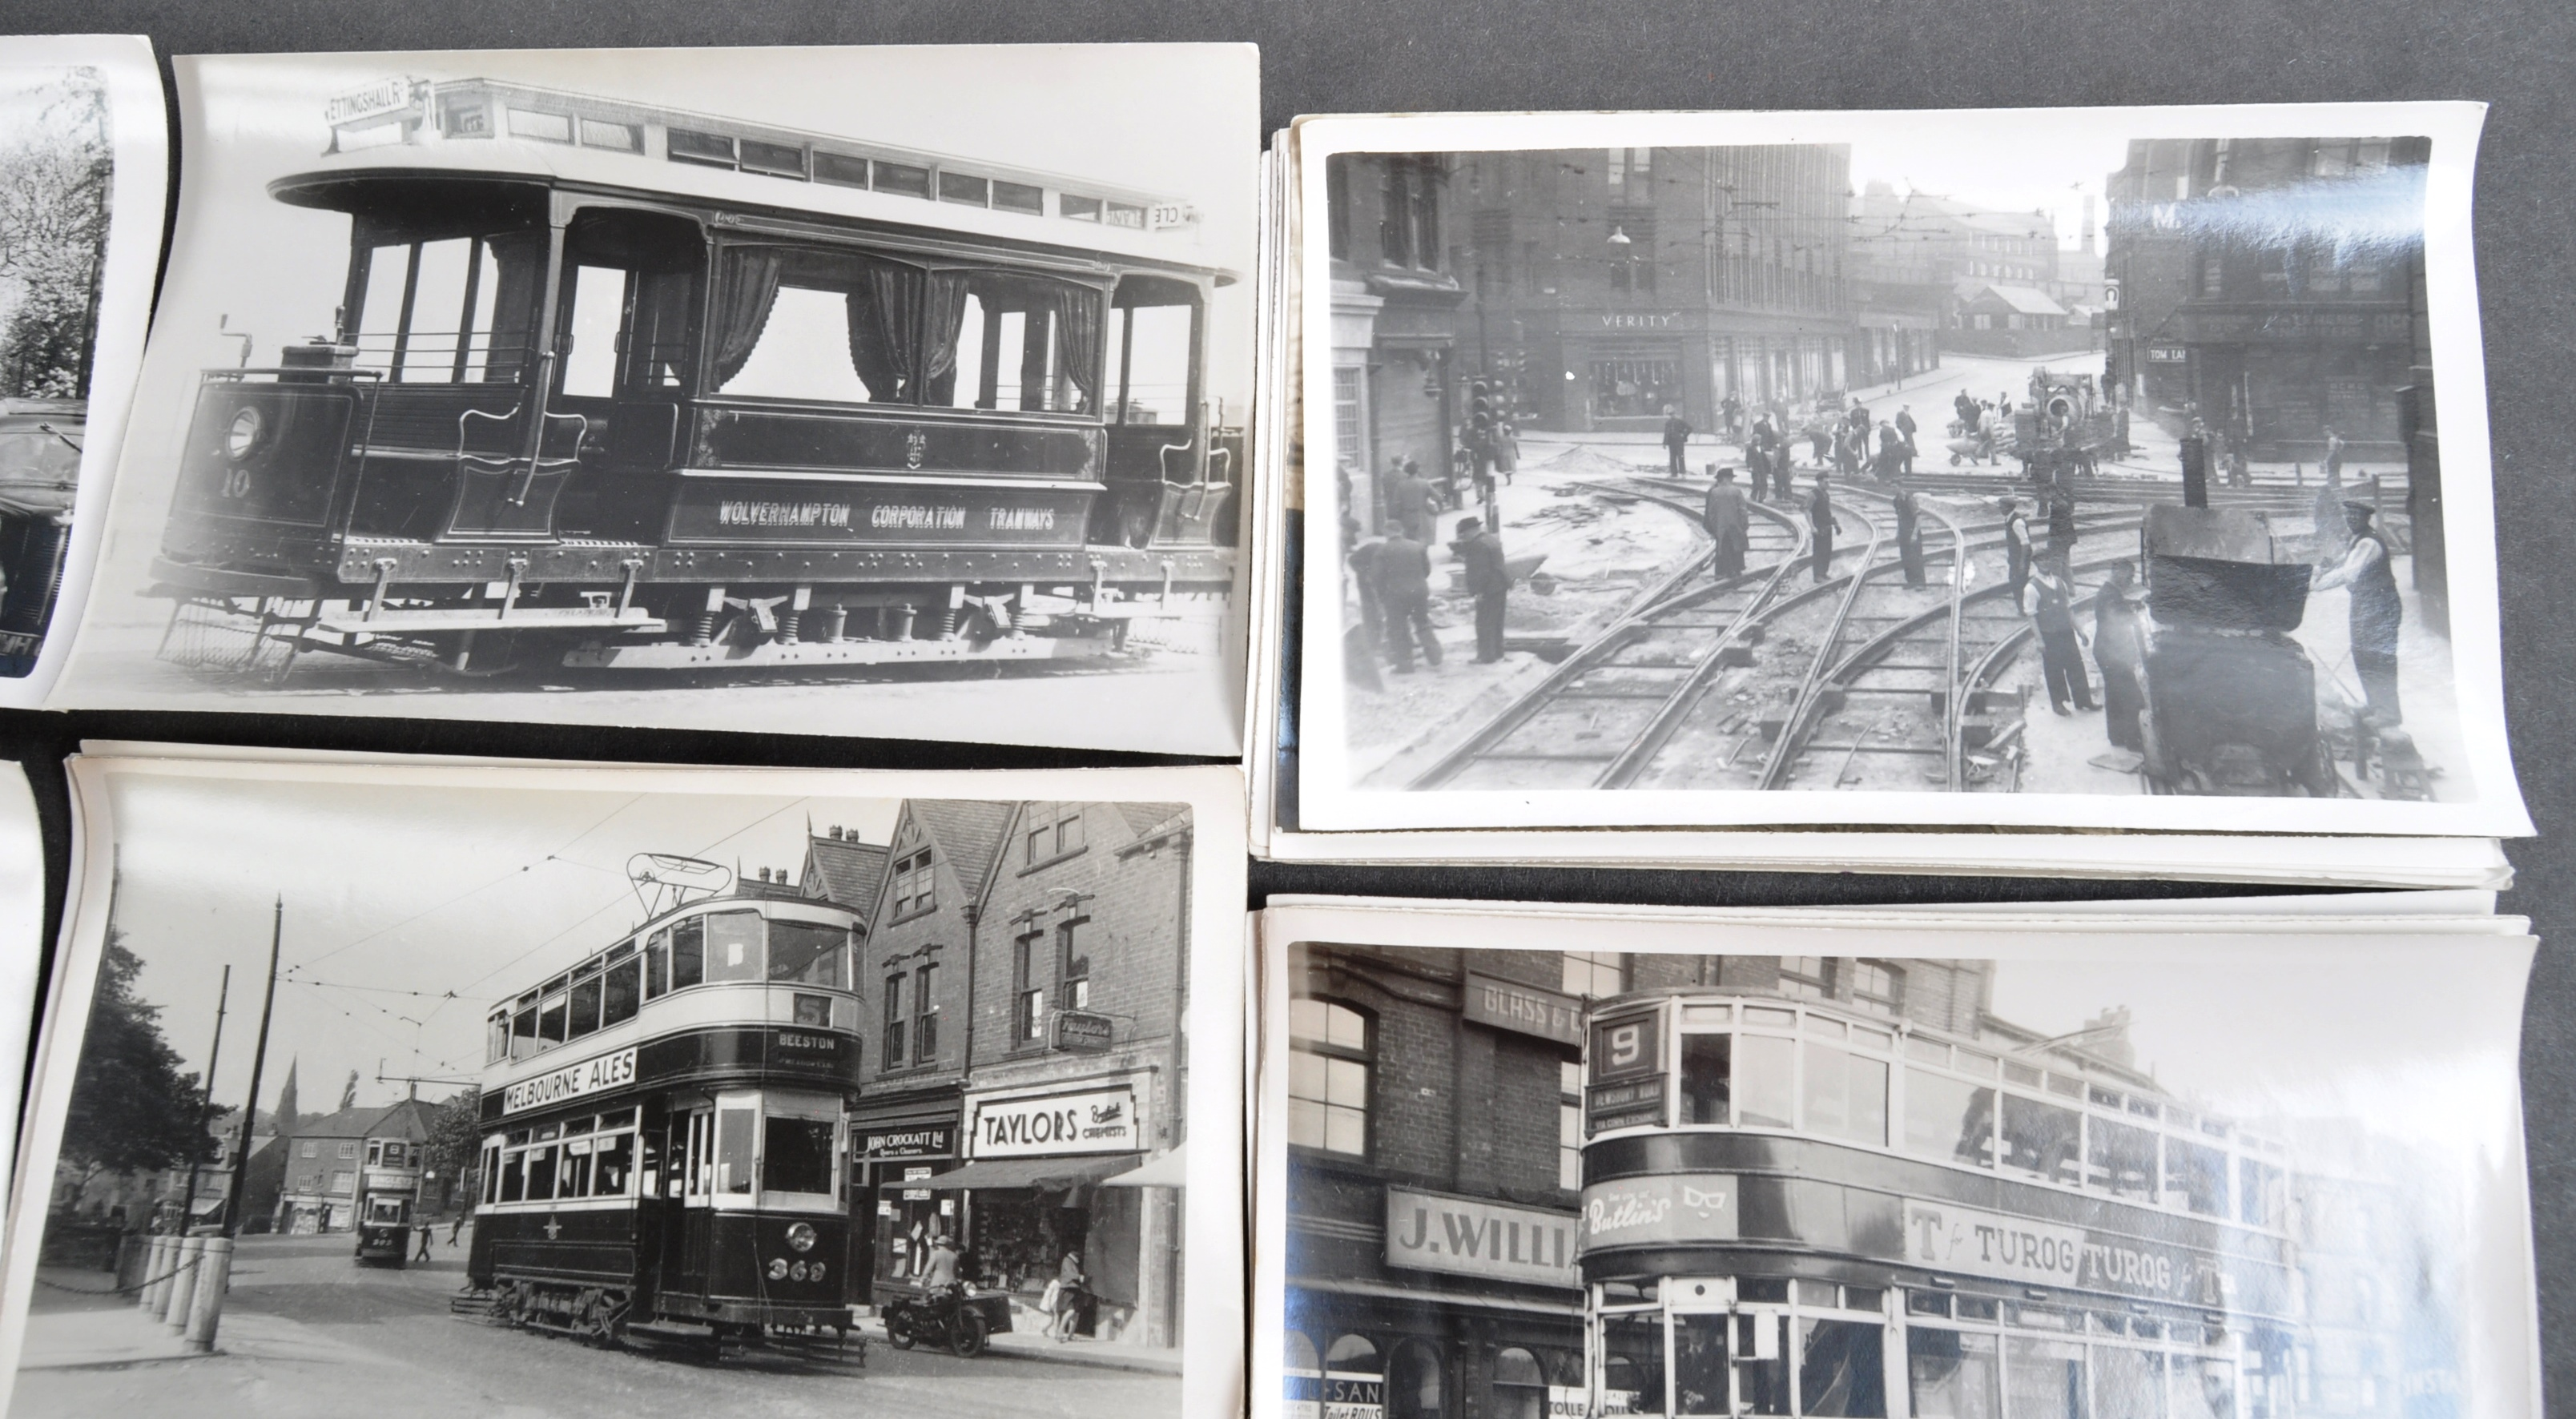 TRAMS & TROLLEY BUSES - LARGE COLLECTION OF BLACK AND WHITE PHOTOS - Image 4 of 9